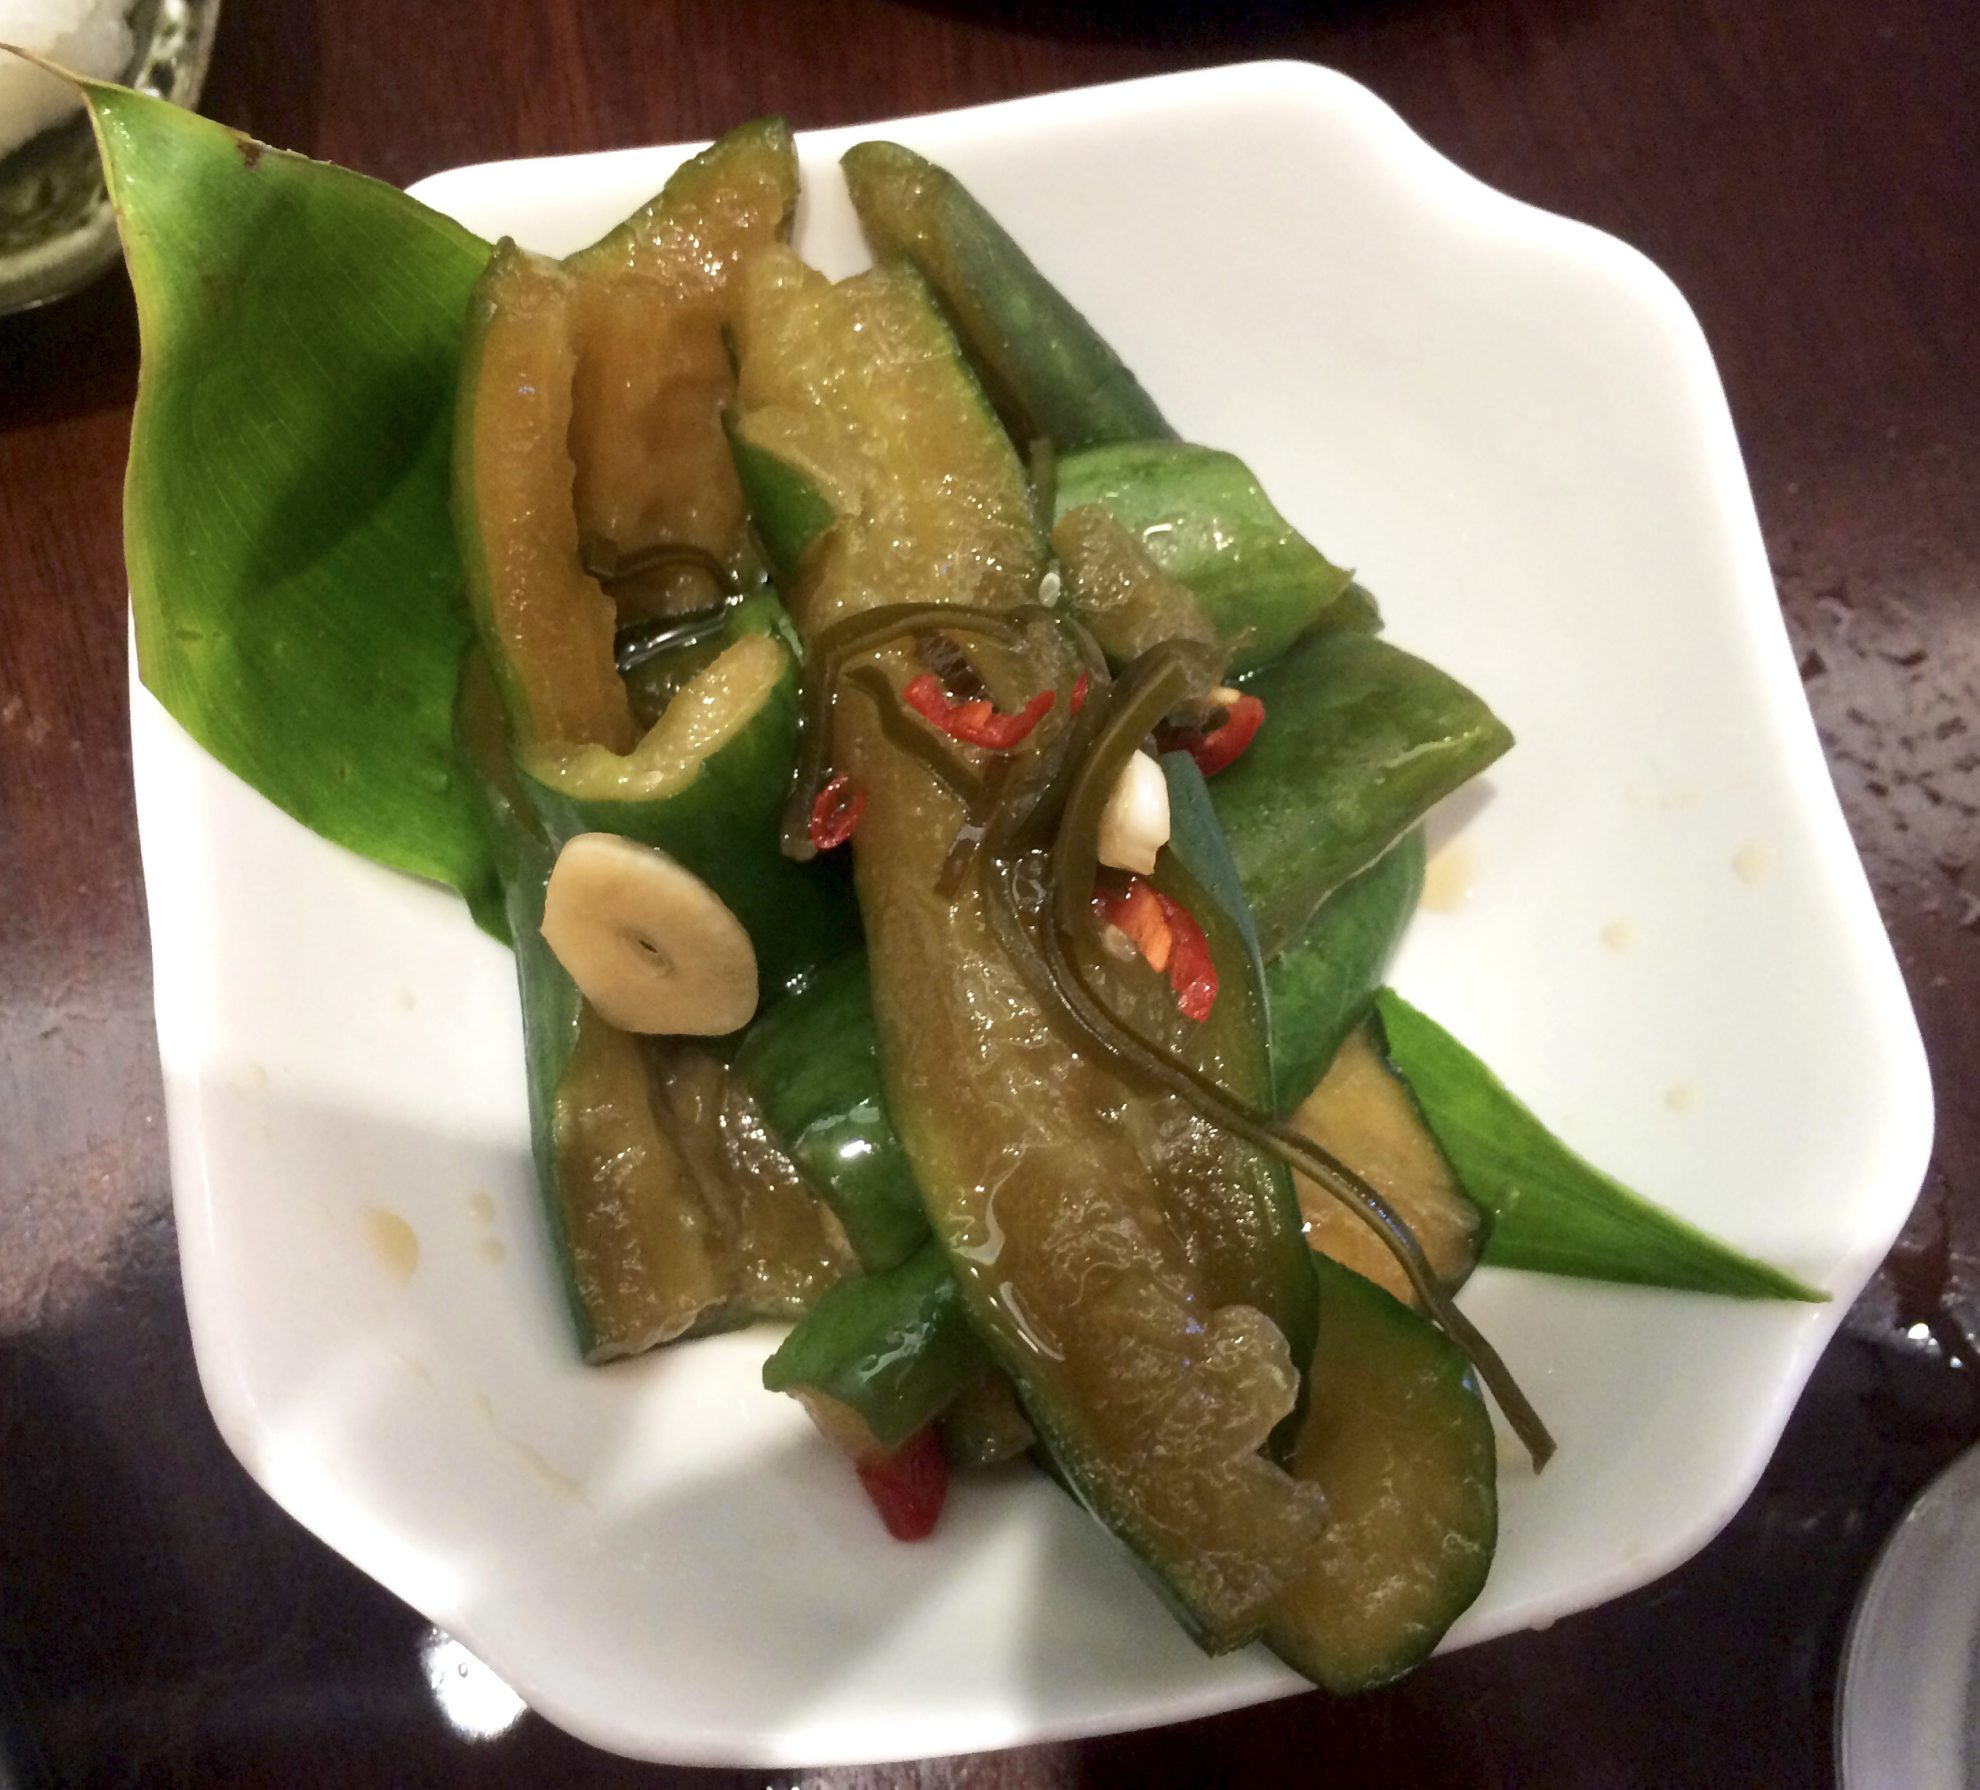 Cucumber salad is part of the foodie guide to Waikiki